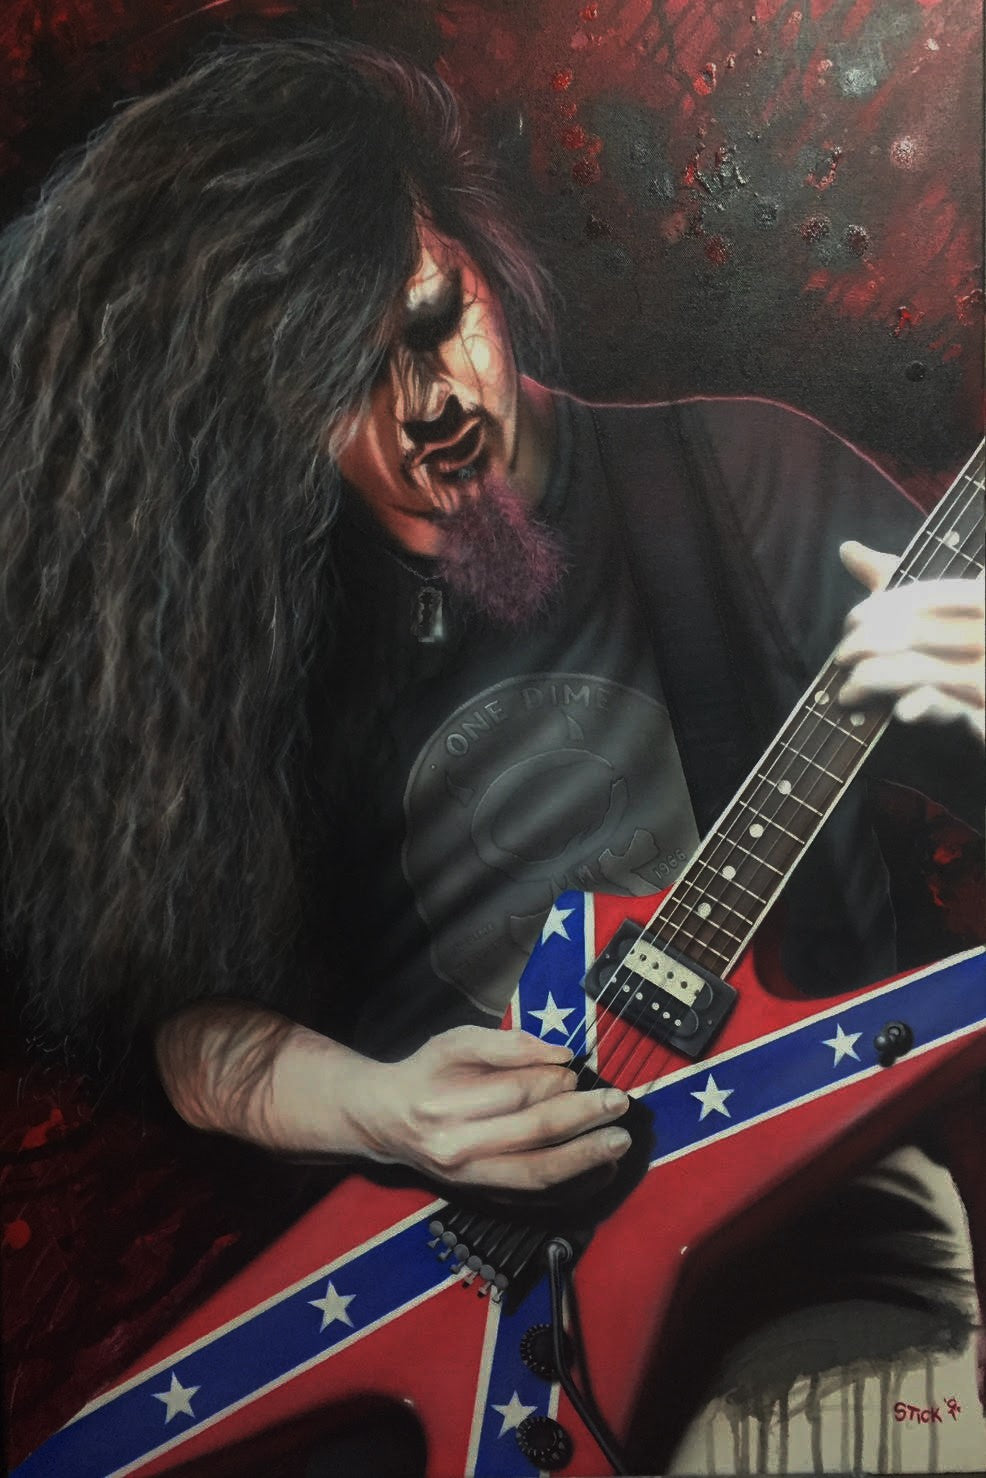 Dimebag Darrel (Pantera) - Can You Hear the Violins Playin' Your Song